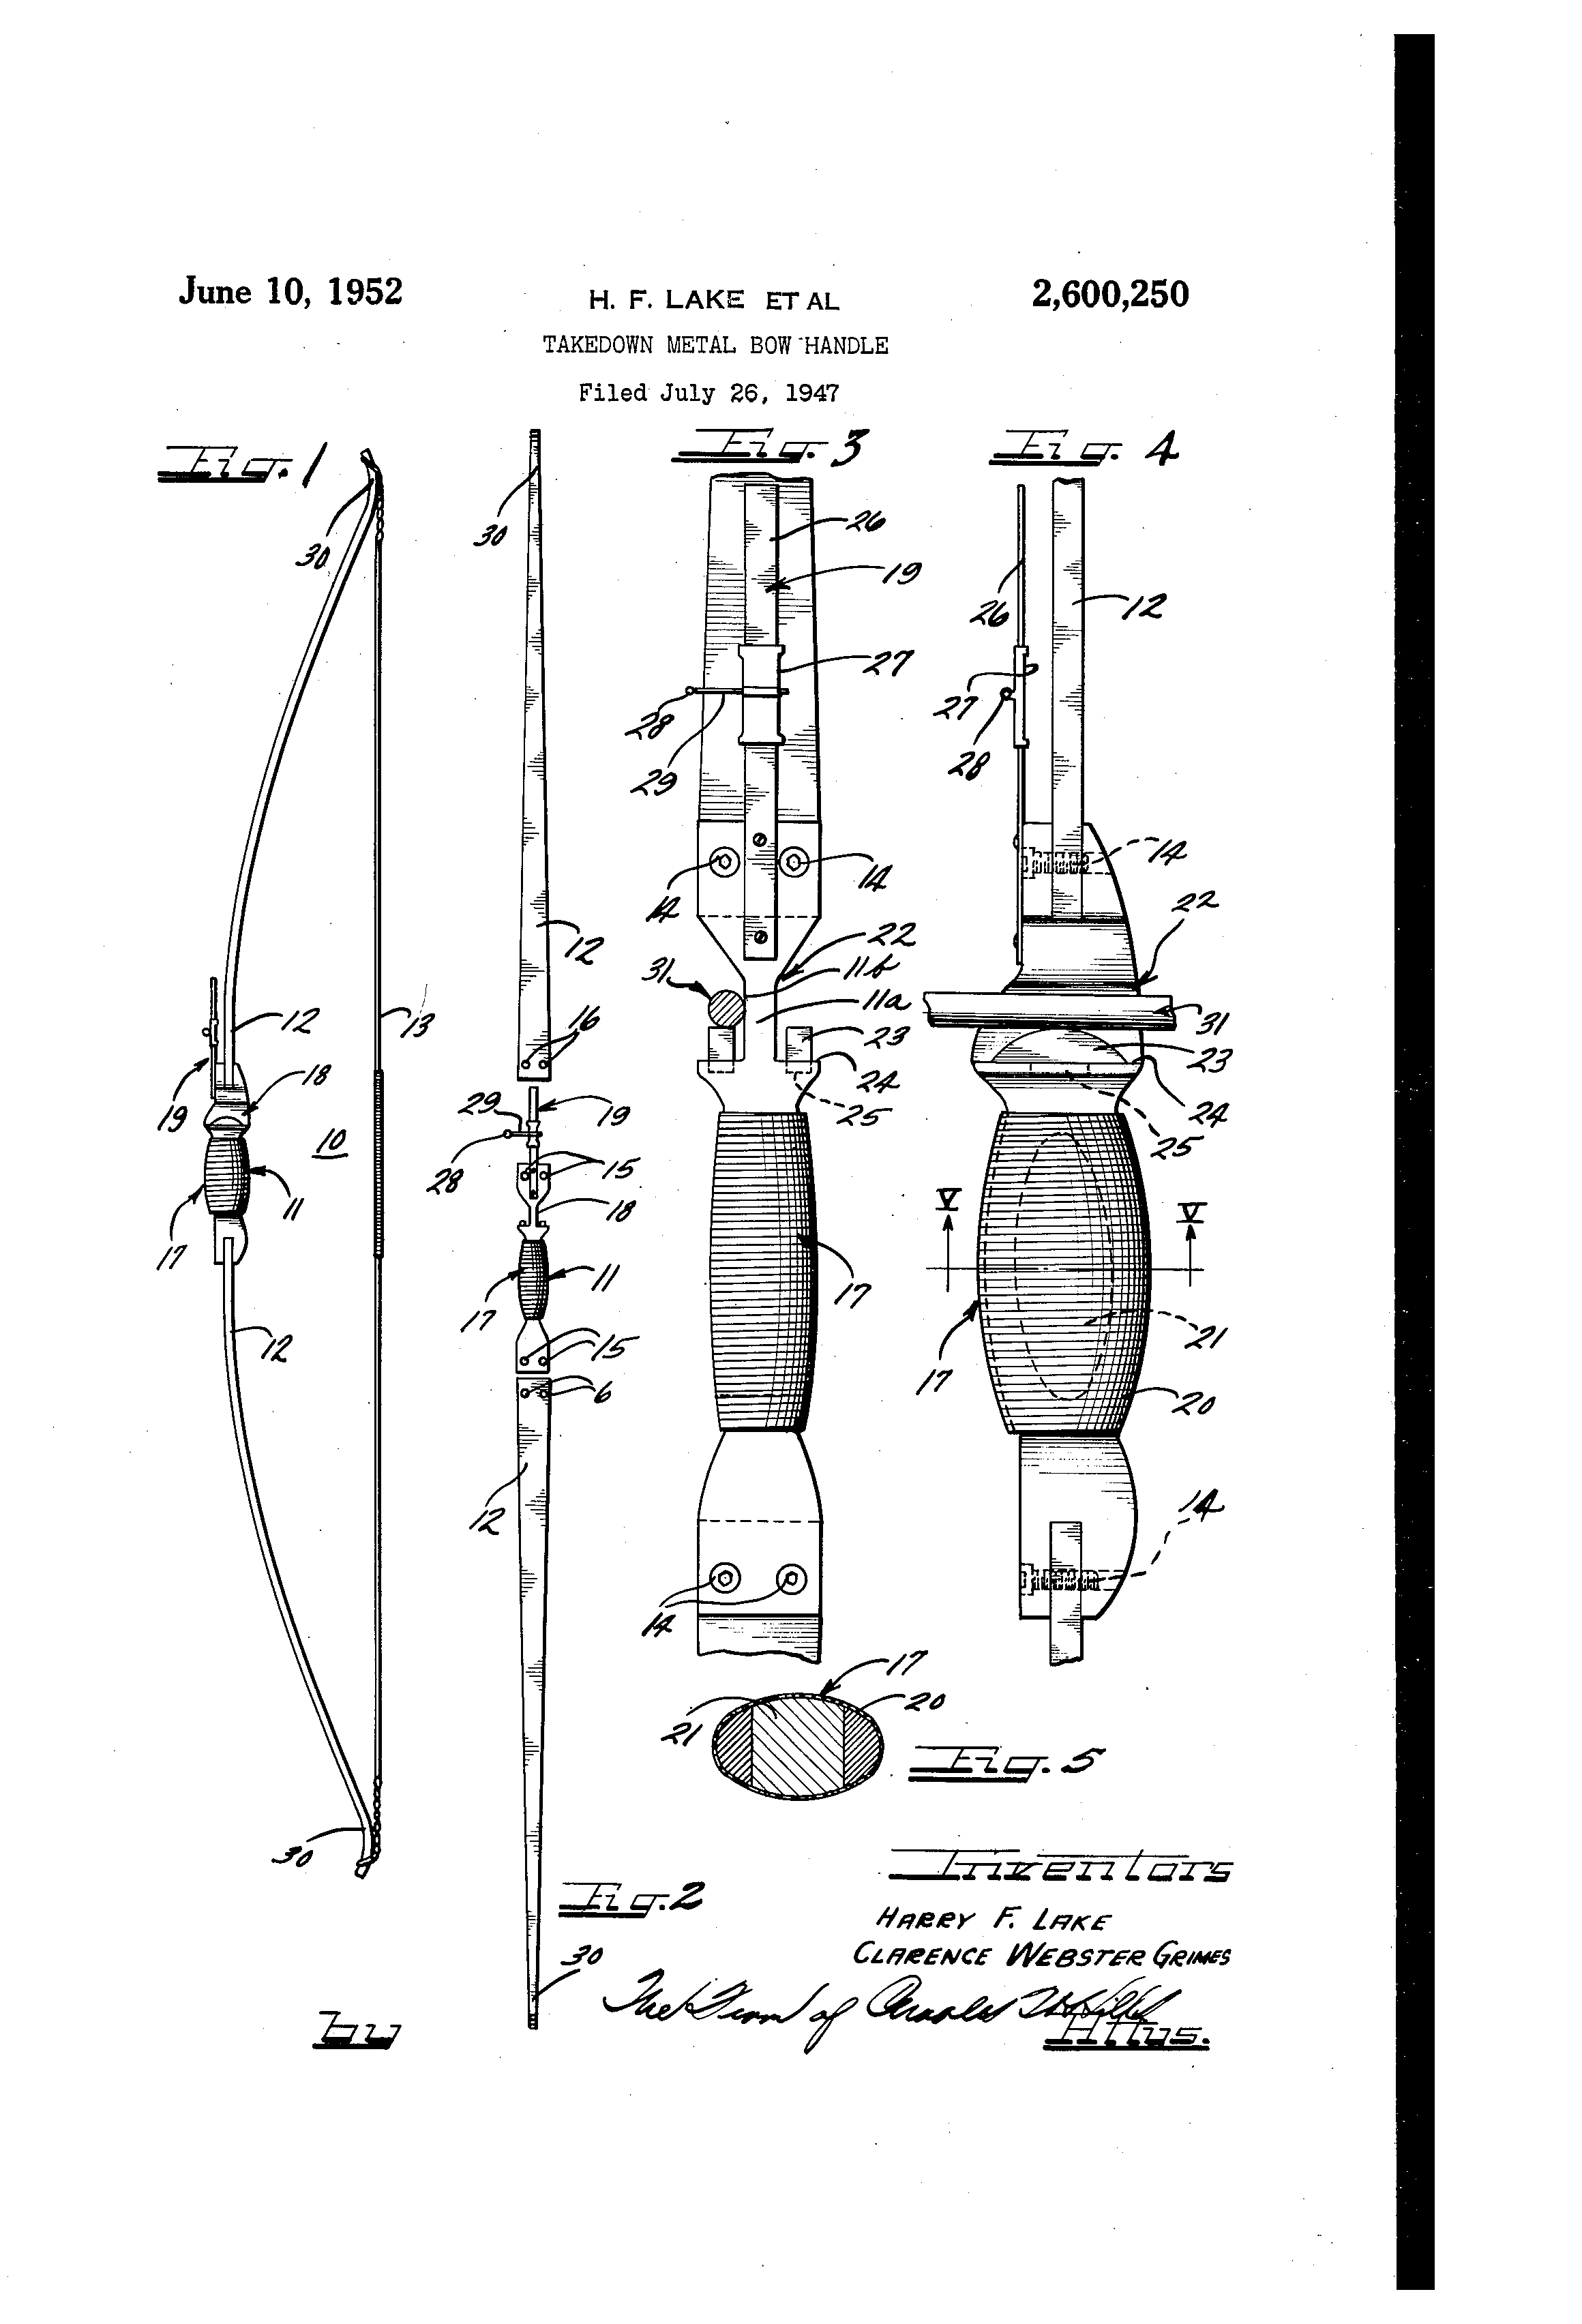 patent us2600250 - takedown metal bow handle